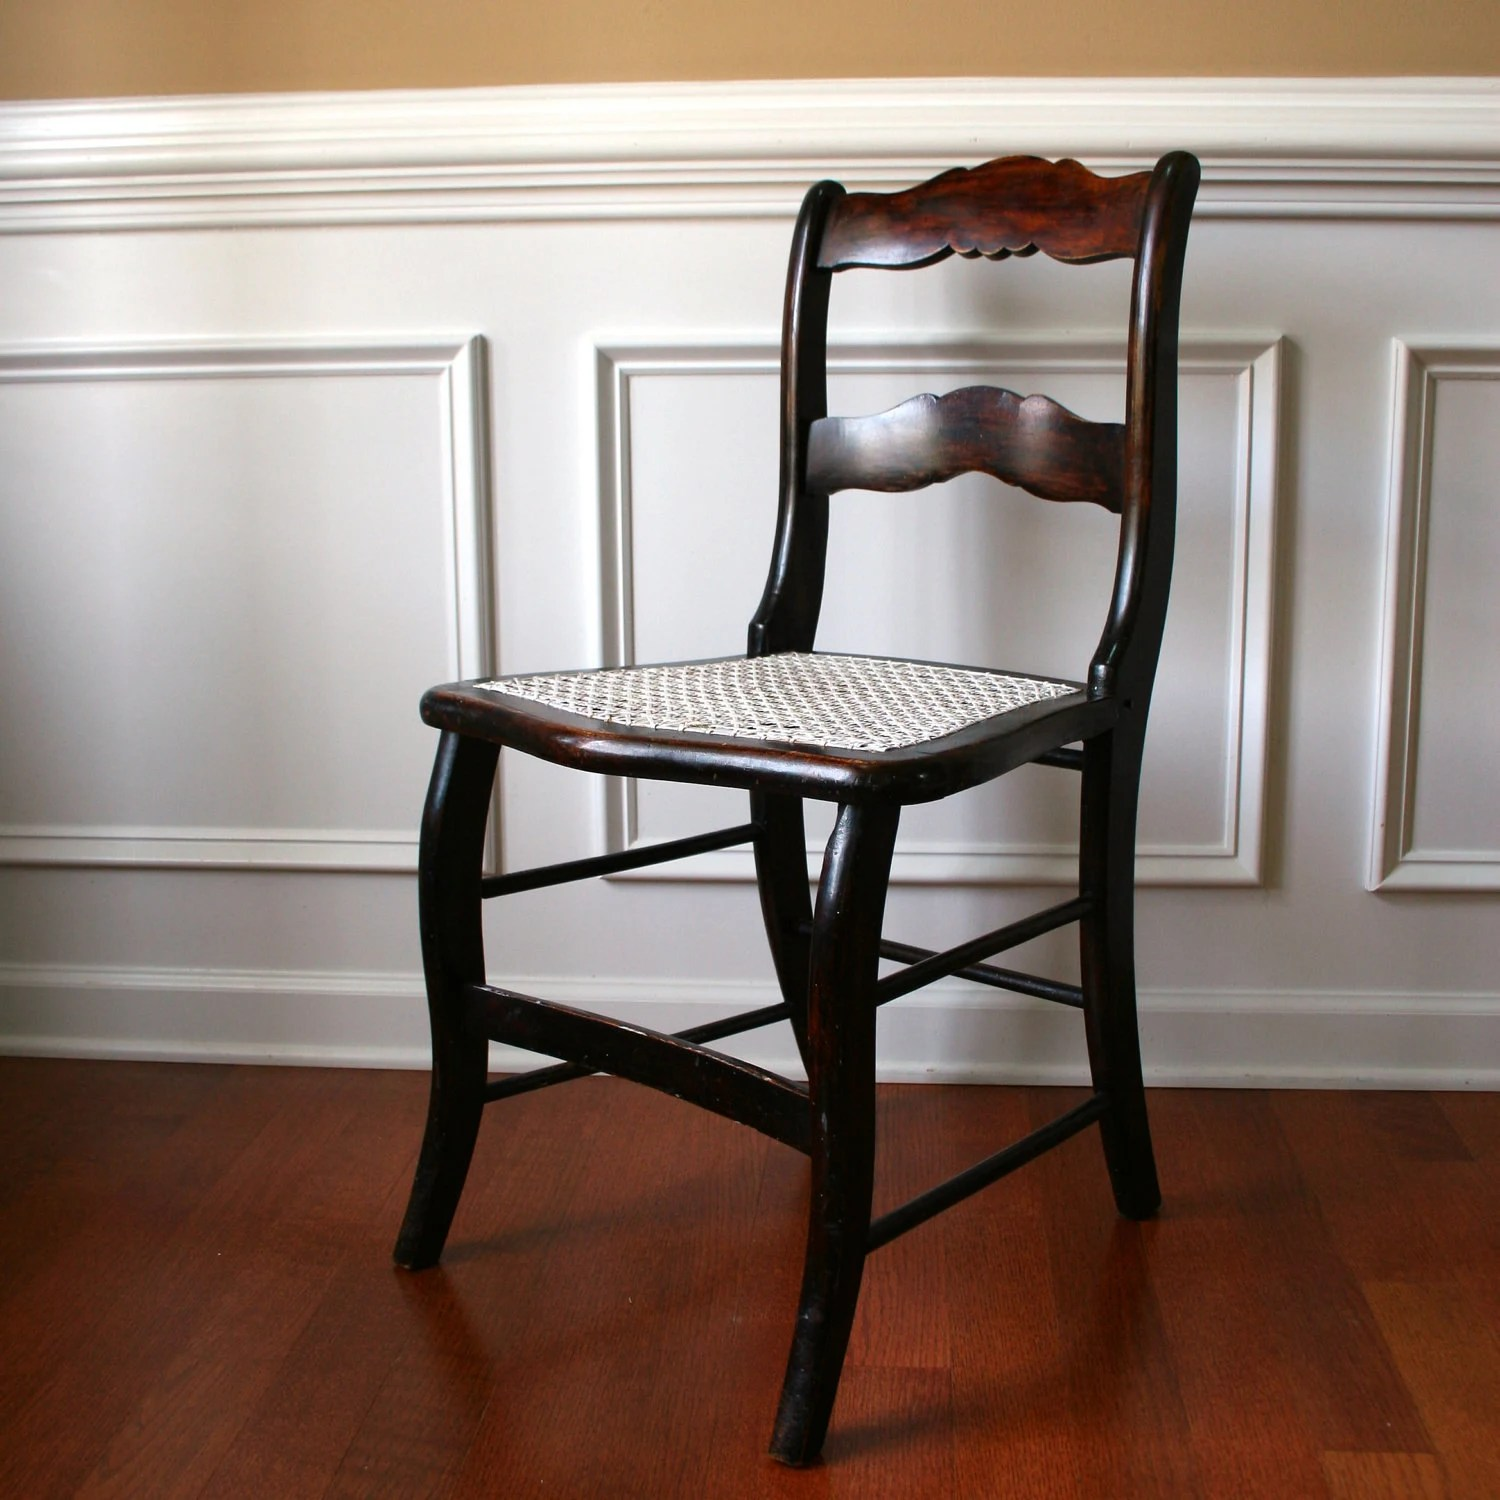 antique accent chair louis xvi dining wood with caning desk boudoir